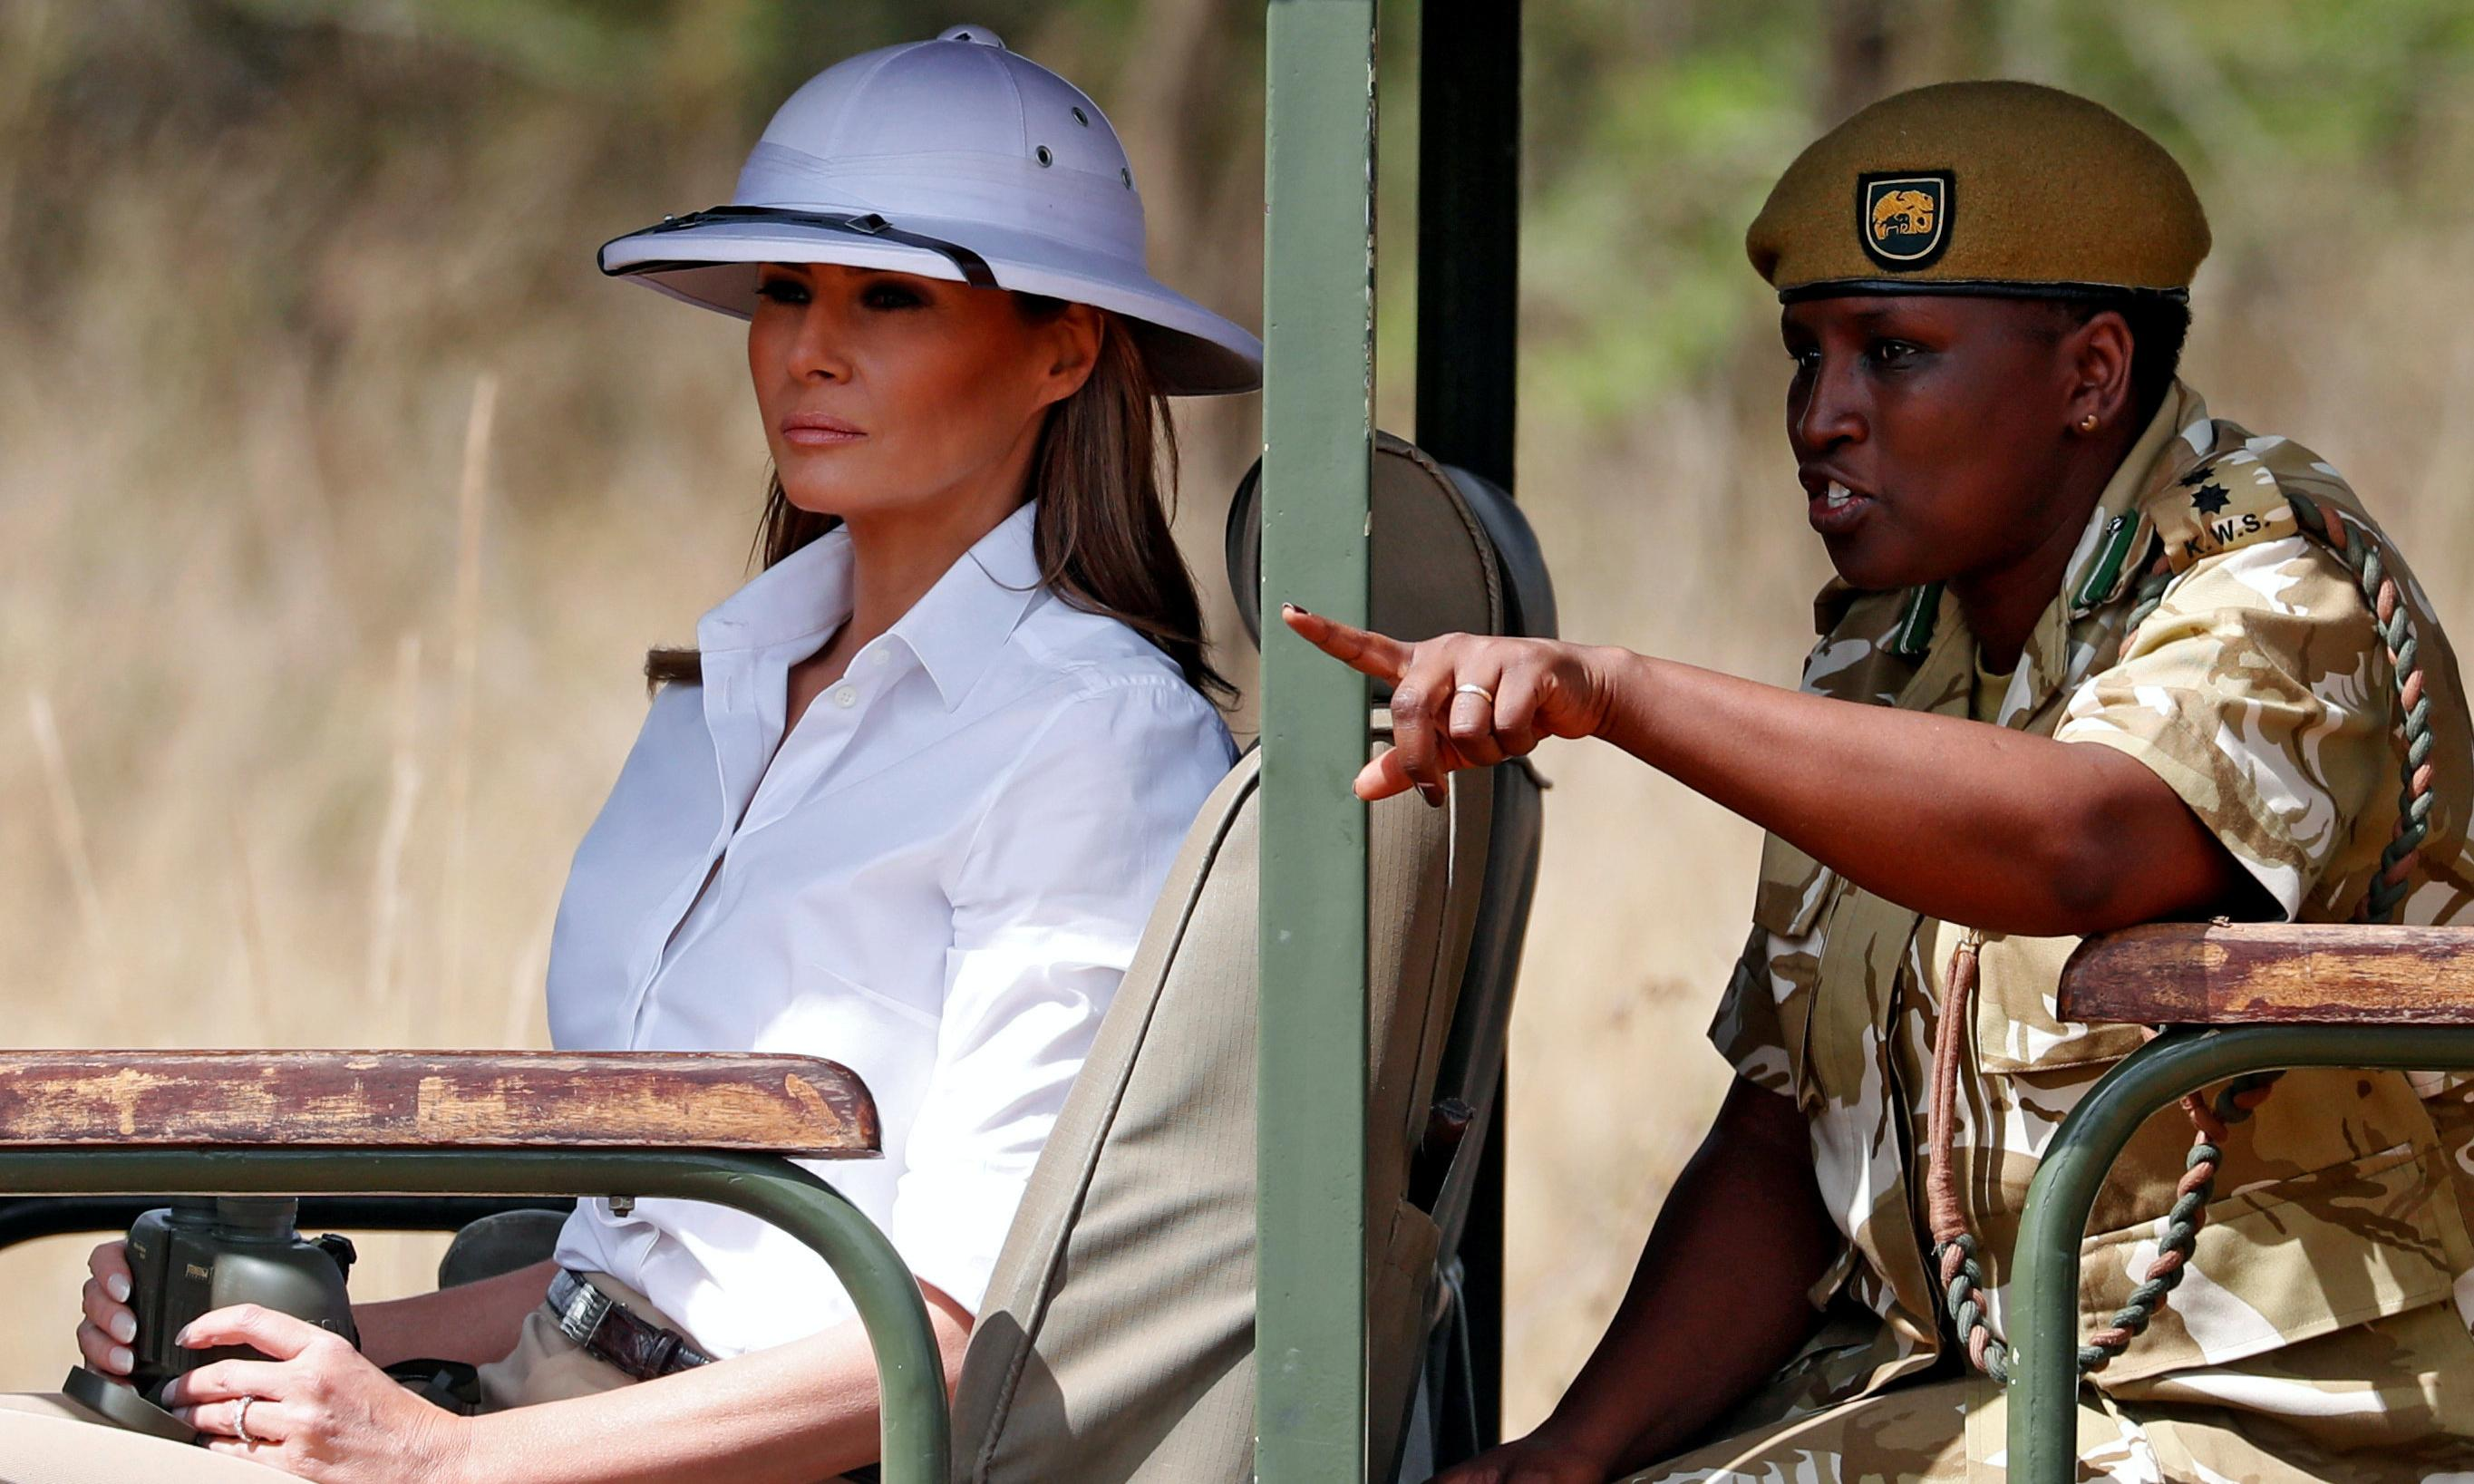 Melania Trump criticised for wearing colonial-style hat during Kenyan safari